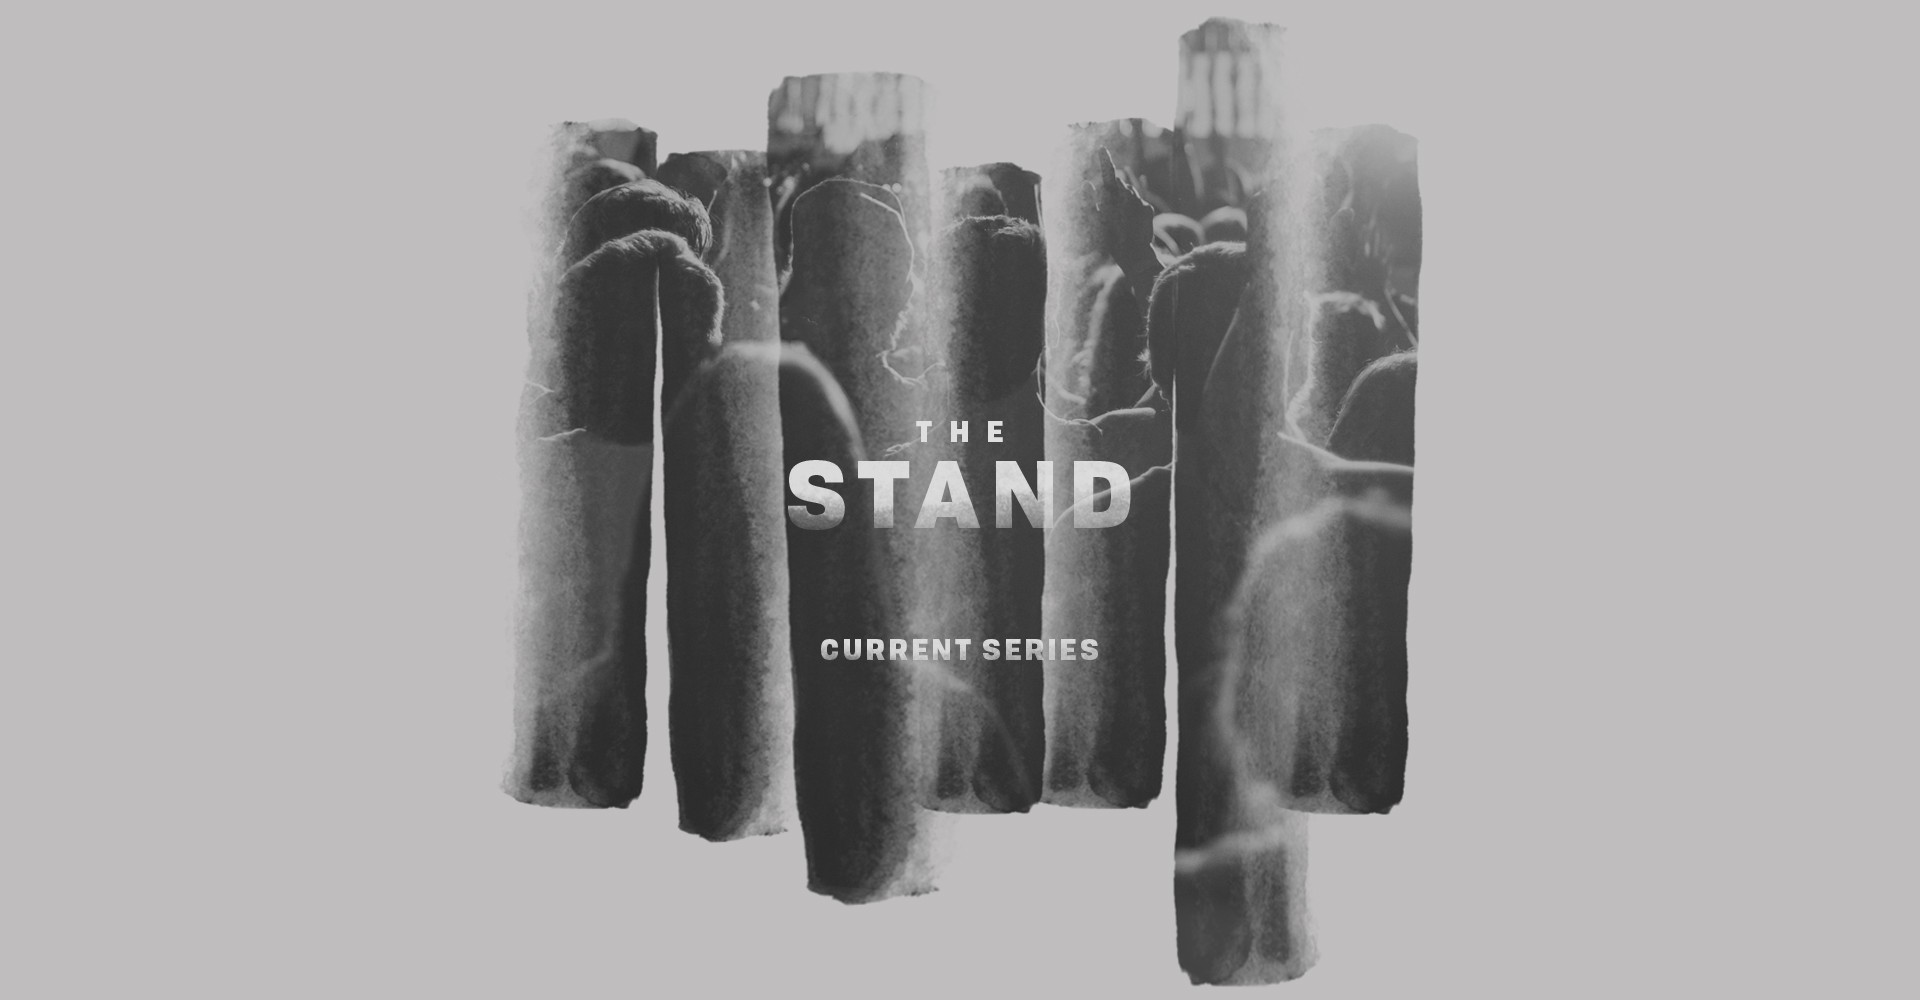 TheStand-Current Series